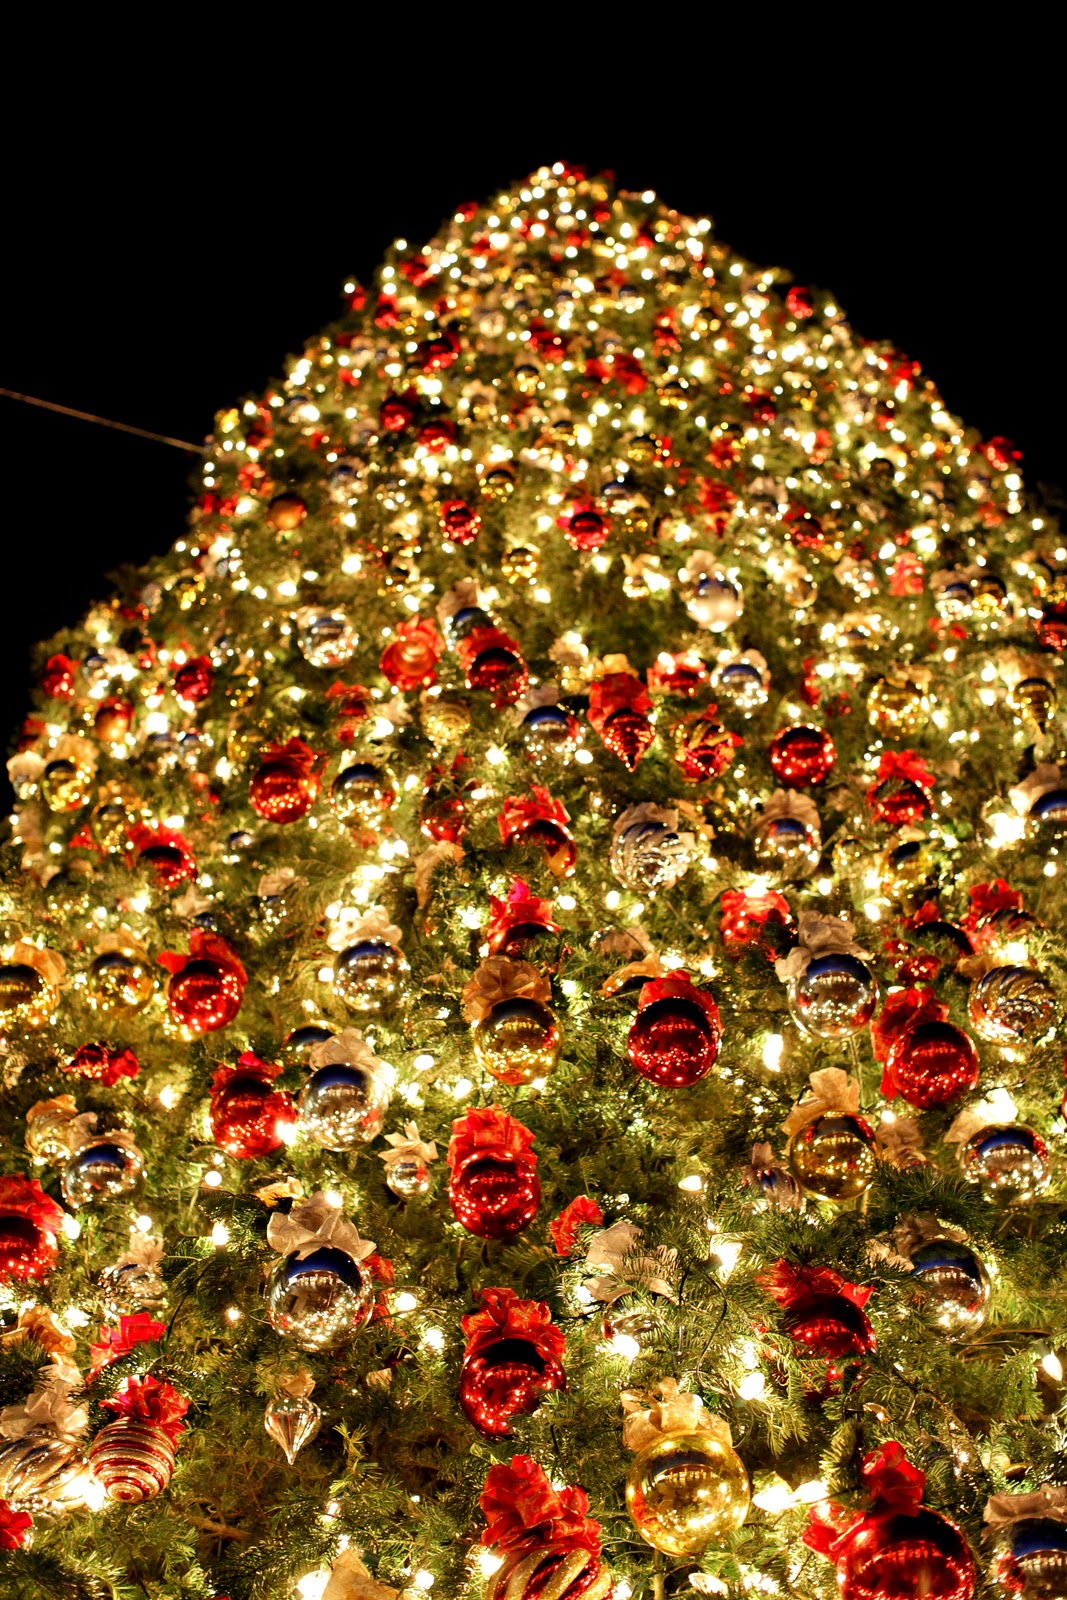 Cached Is the christmas tree at fashion island real